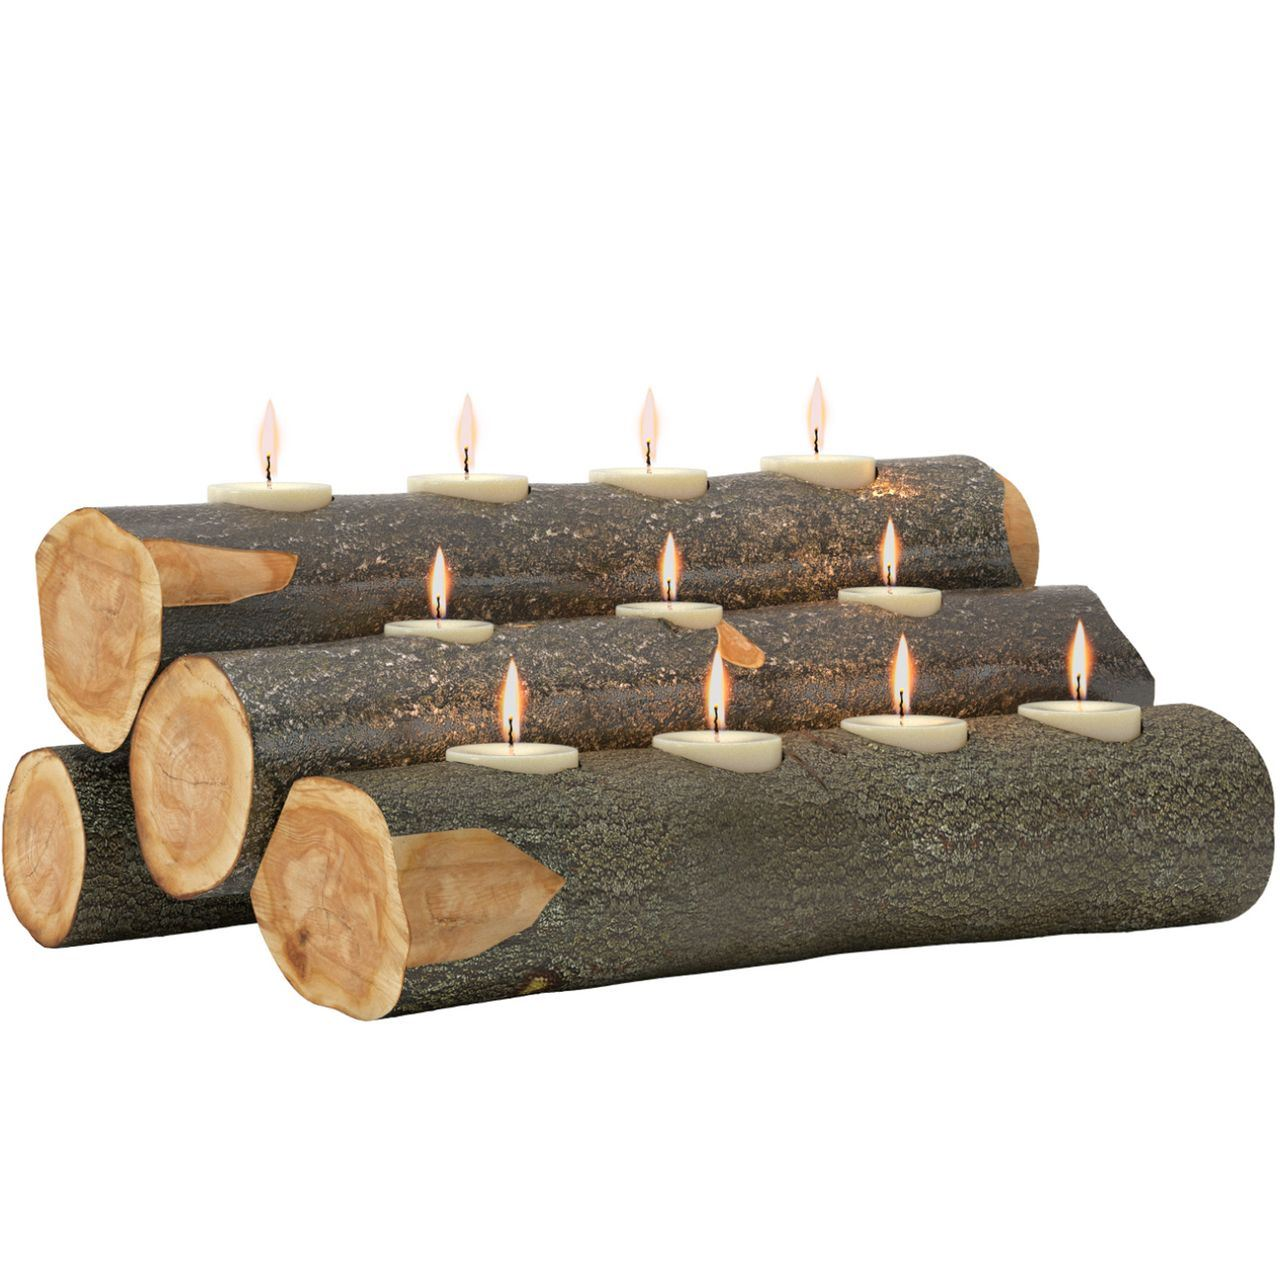 Regal Flame LW4205 Tealight 24in Fireplace Log Candle Holder Insert - Rustic